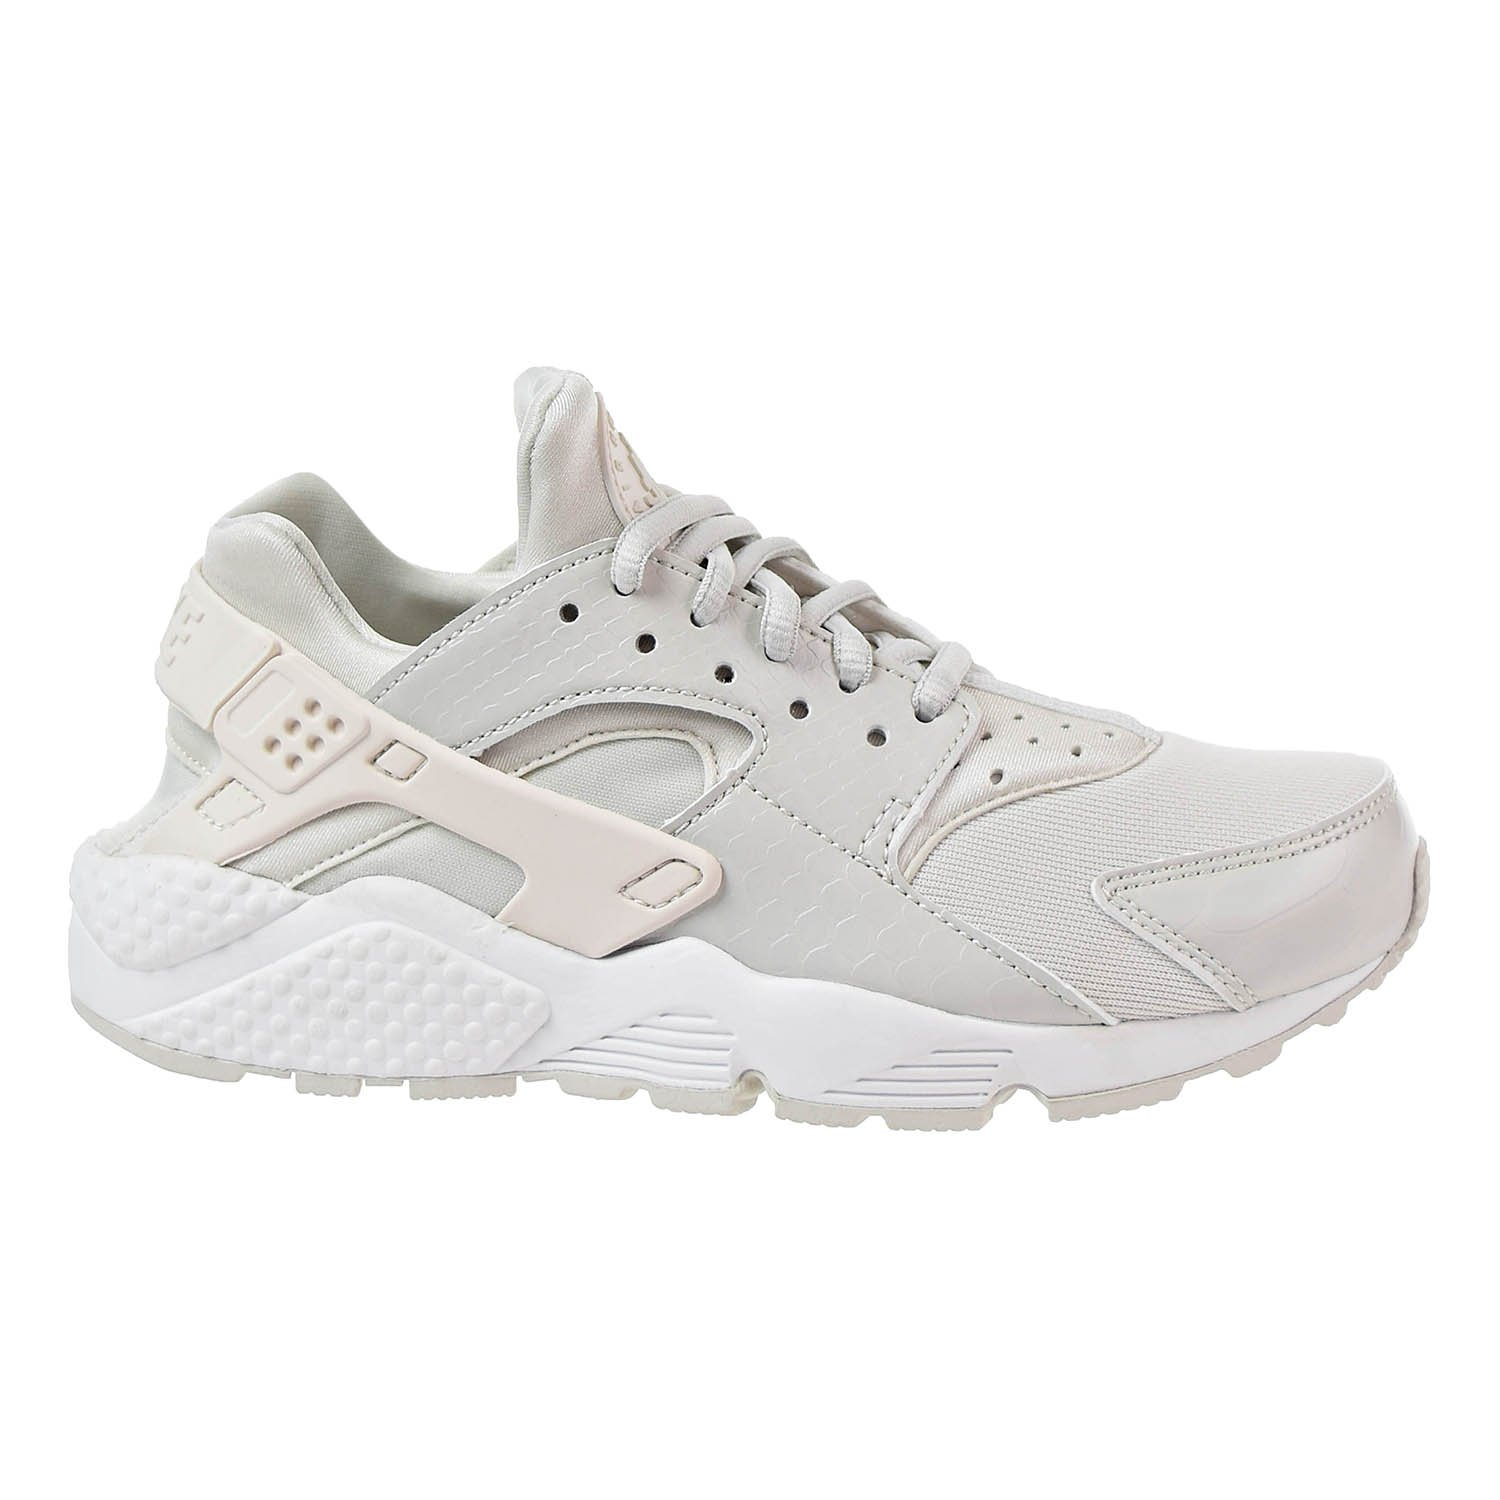 b9480e8f8 Galleon - NIKE Air Huarache Run Women s Running Shoes Phantom Light Bone  634835-028 (9.5 B(M) US)